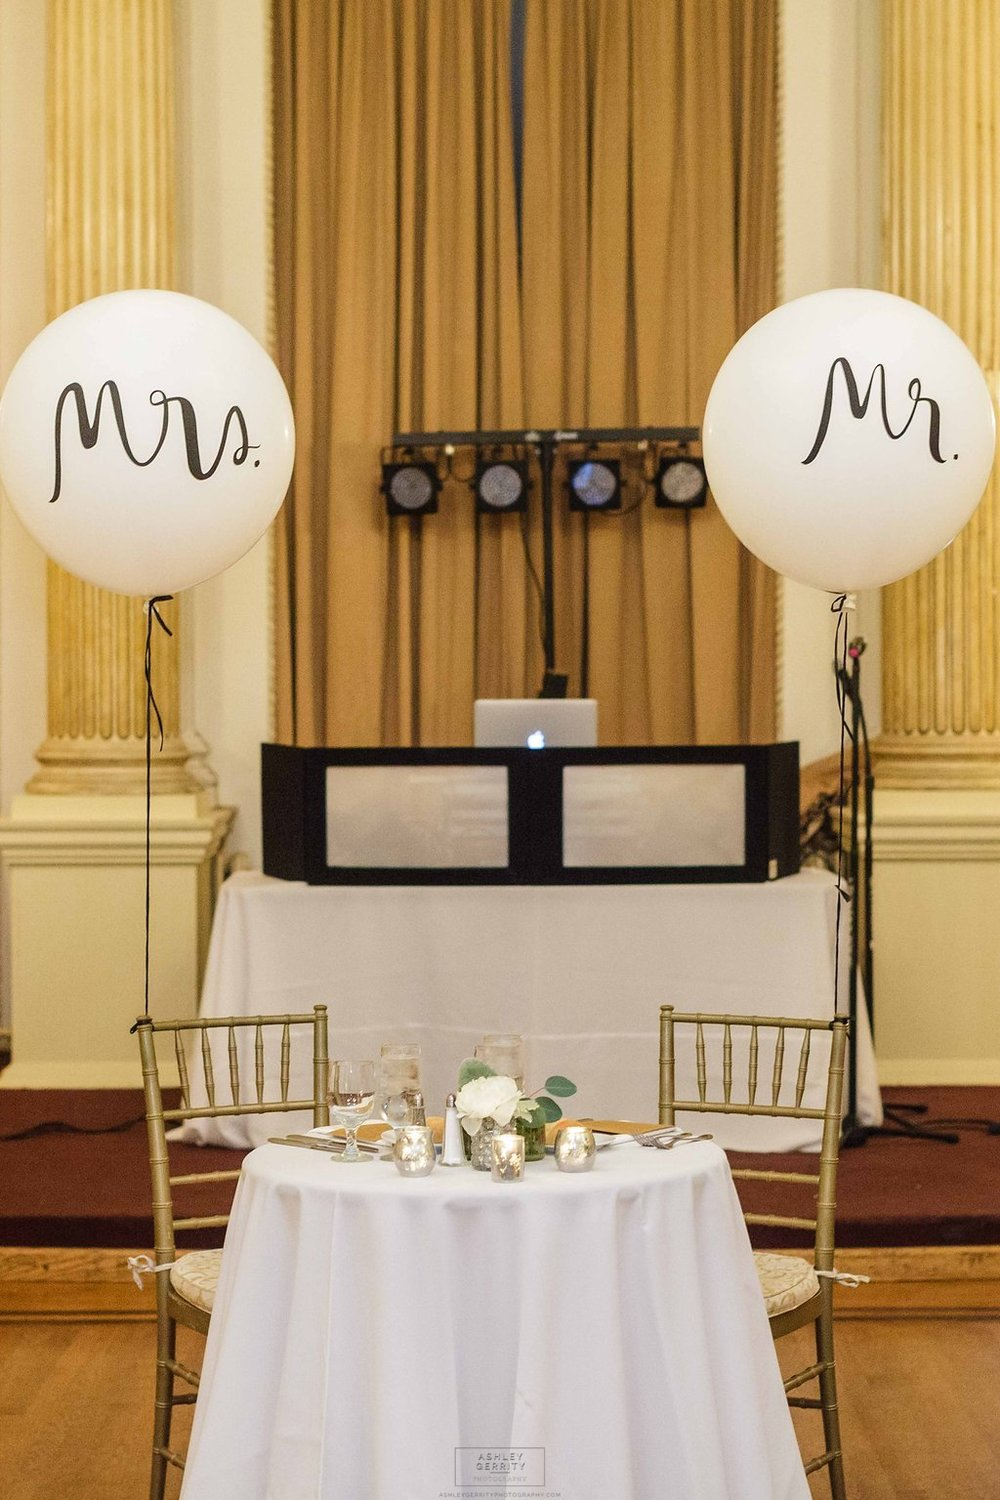 27 Philadelphia Wedding Stotesbury Mansion Mr and Mrs Balloons.jpg